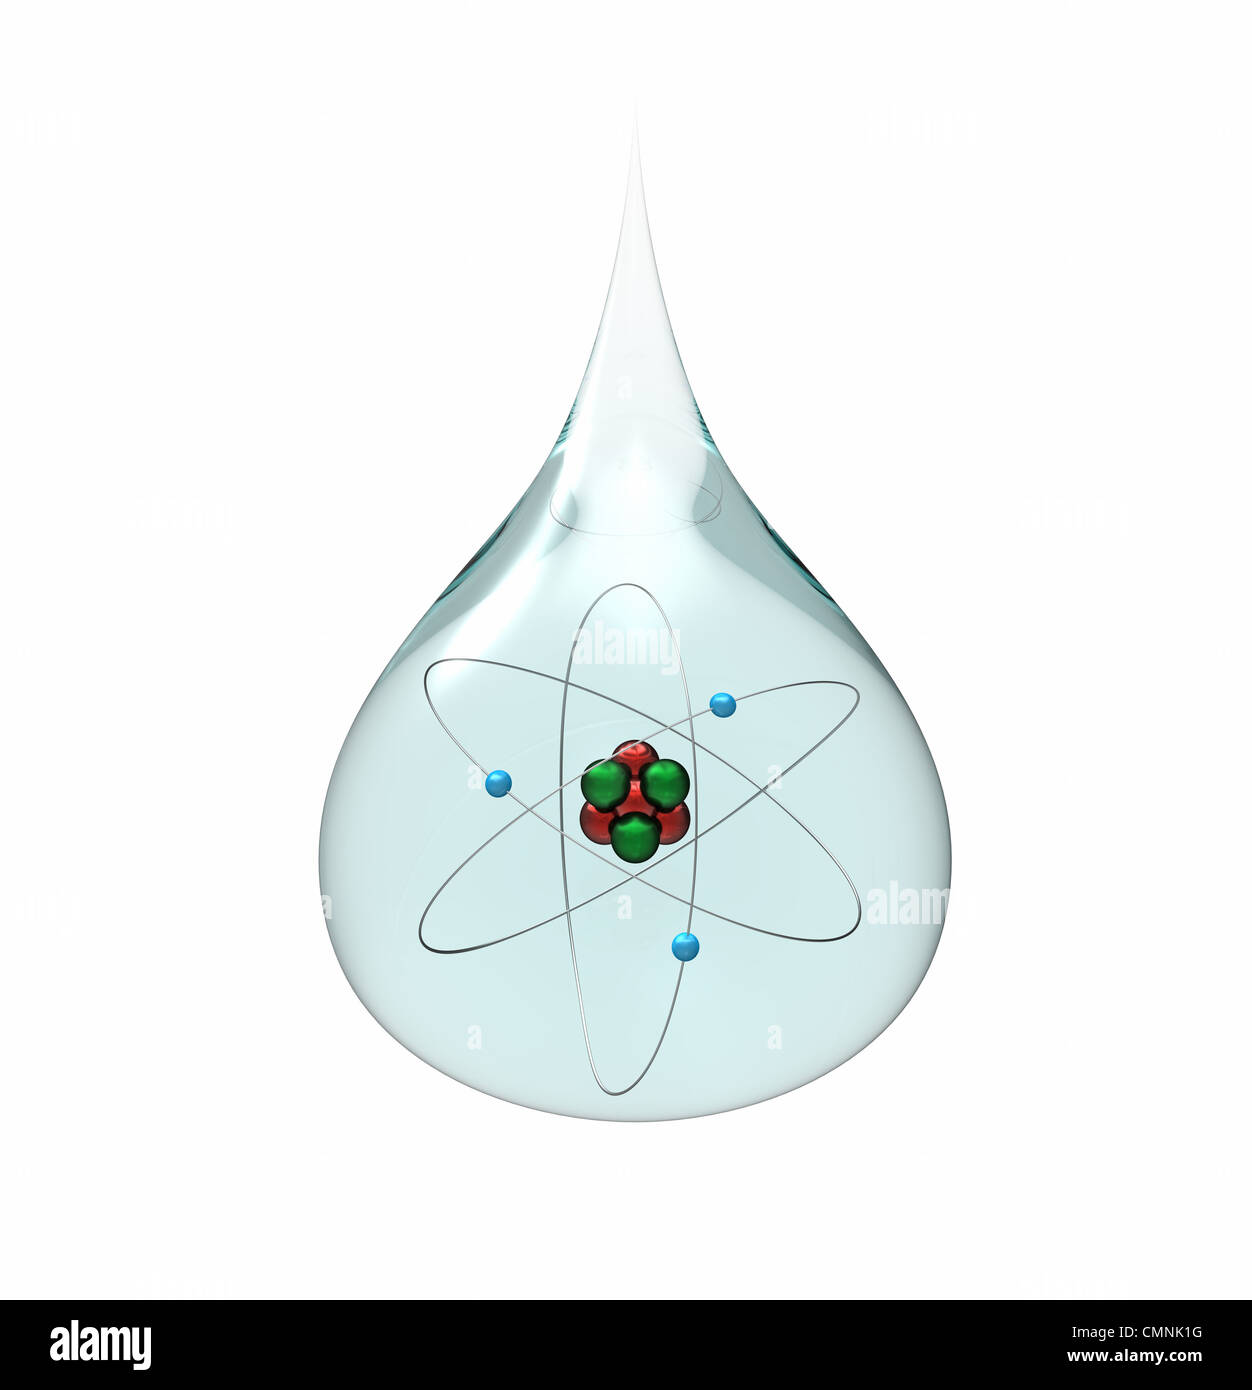 hight resolution of model of a lithium atom in a drop of water isolated on white 3d